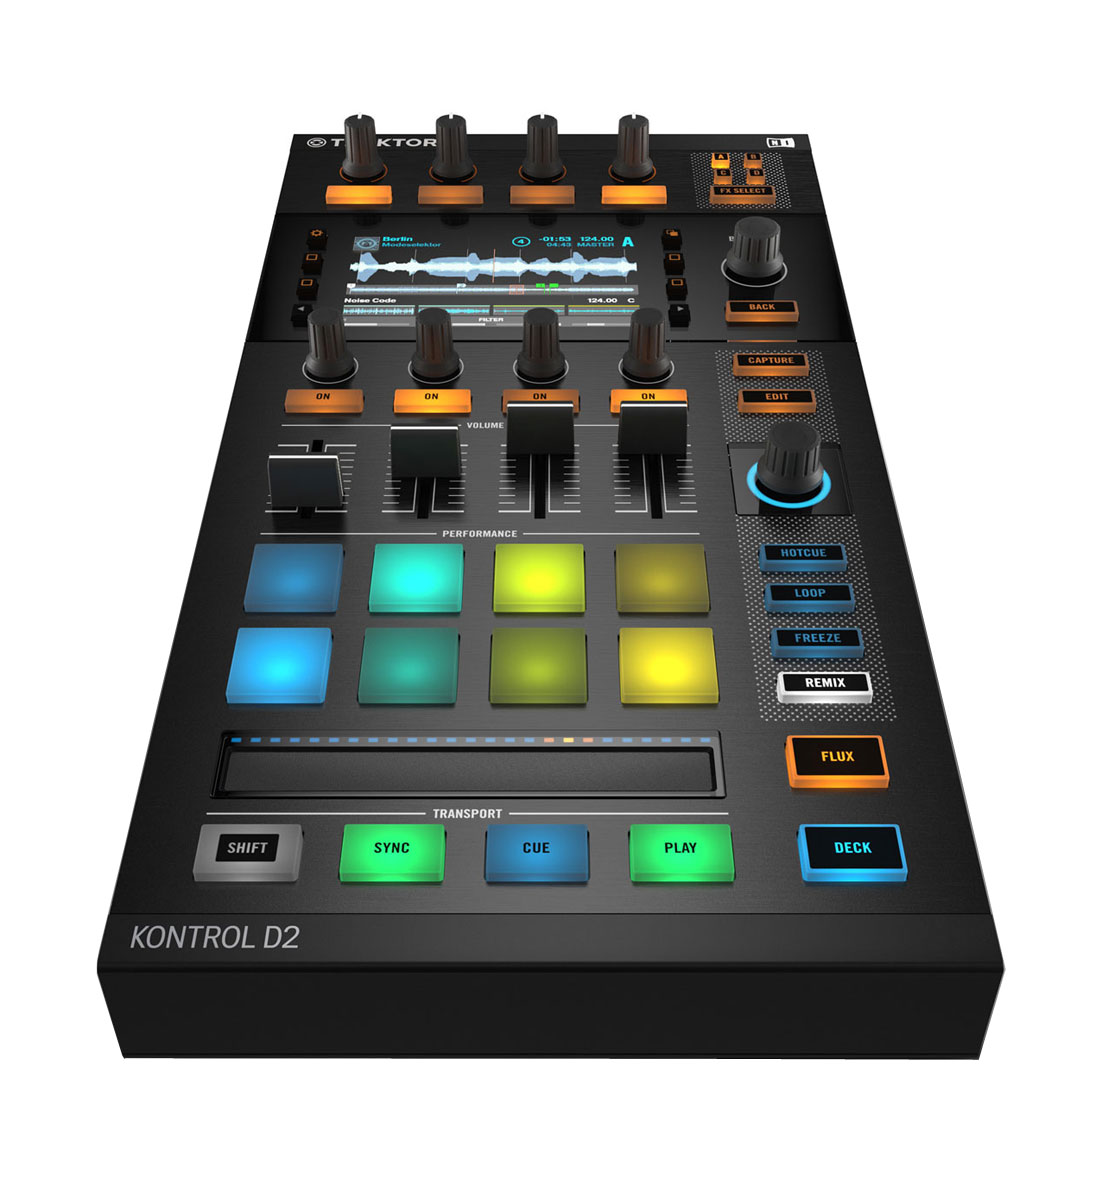 кейс native instruments traktor kontrol s4 Native Instruments Traktor Kontrol D2 DJ-контроллер